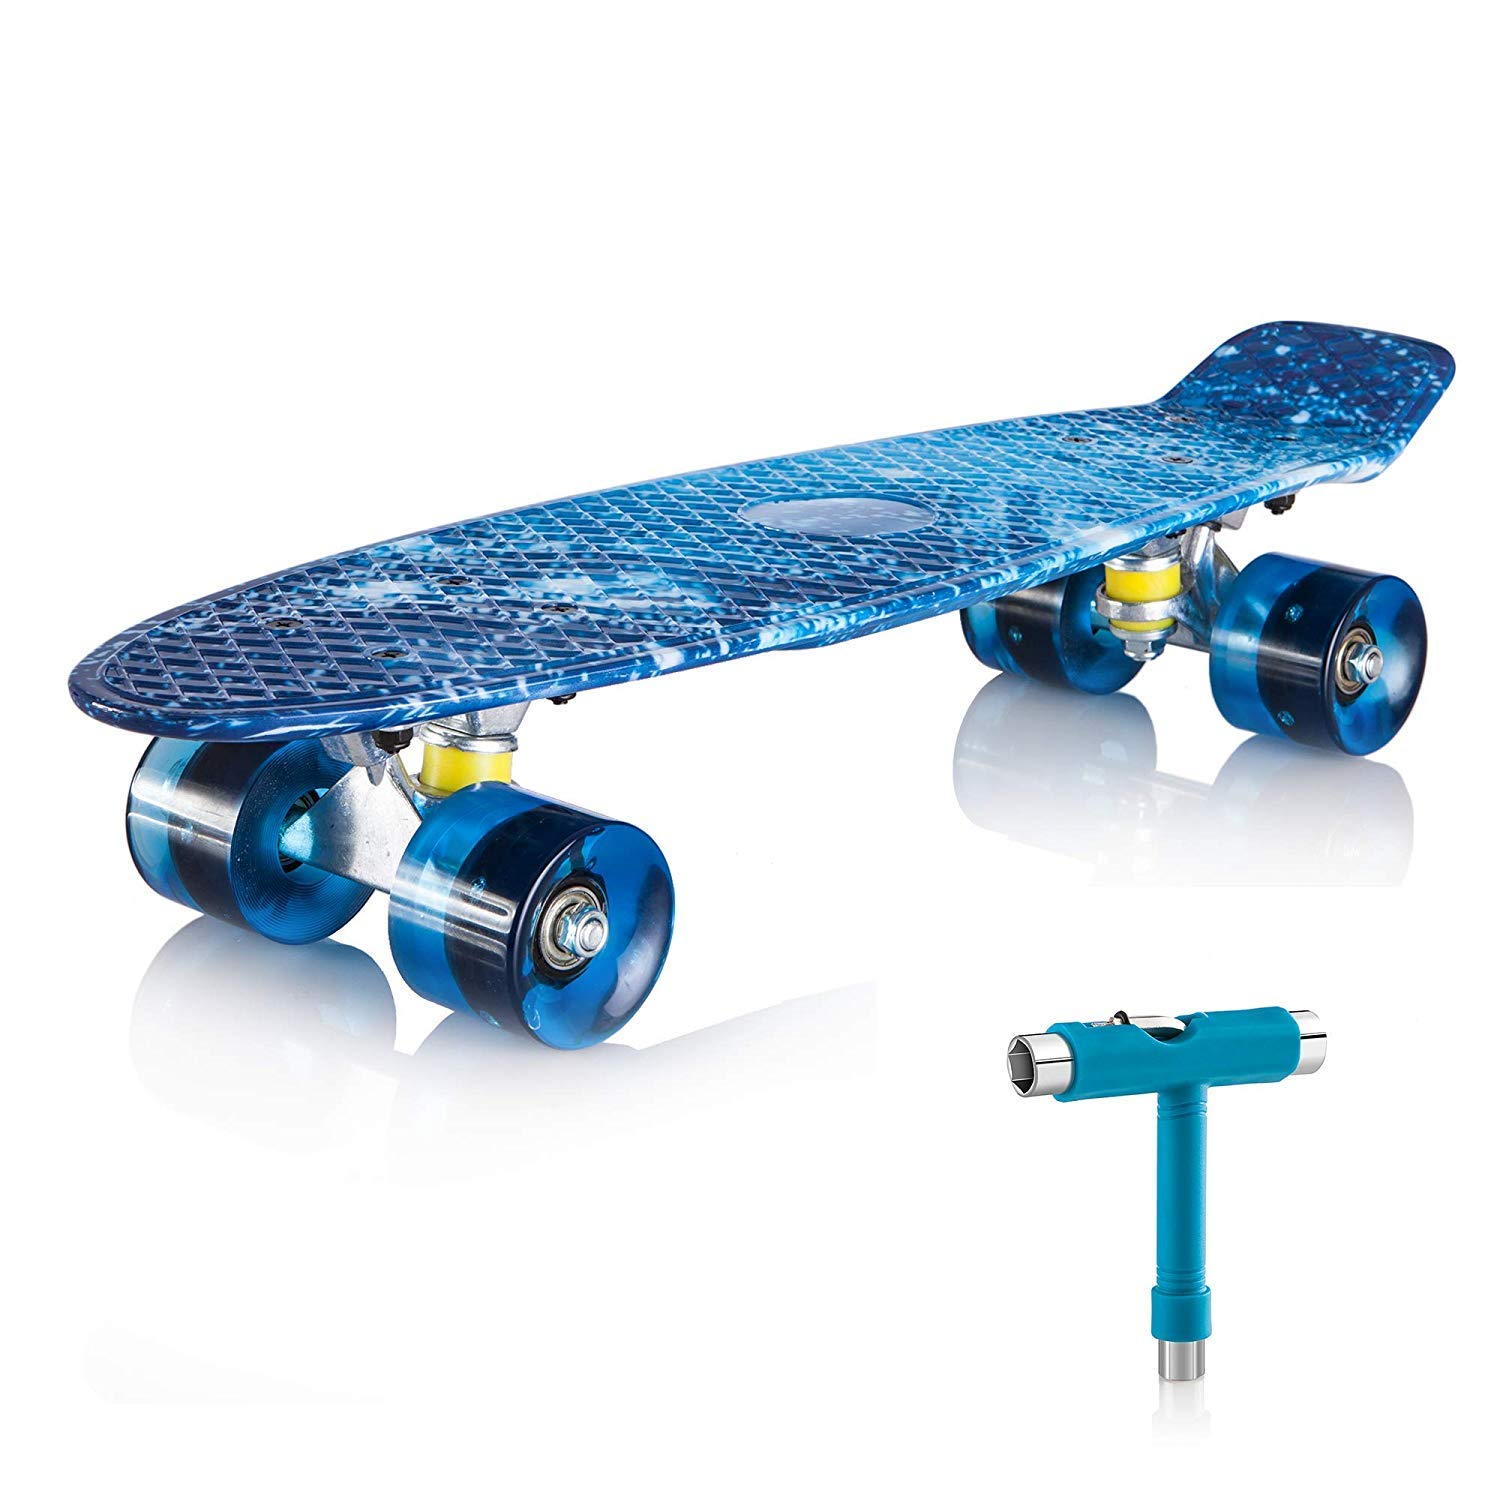 Newdora 22 Skateboard , Skateboard Cruiser with Colorful LED Light Up Wheels for Youths, Beginners with Gift Box Galaxy